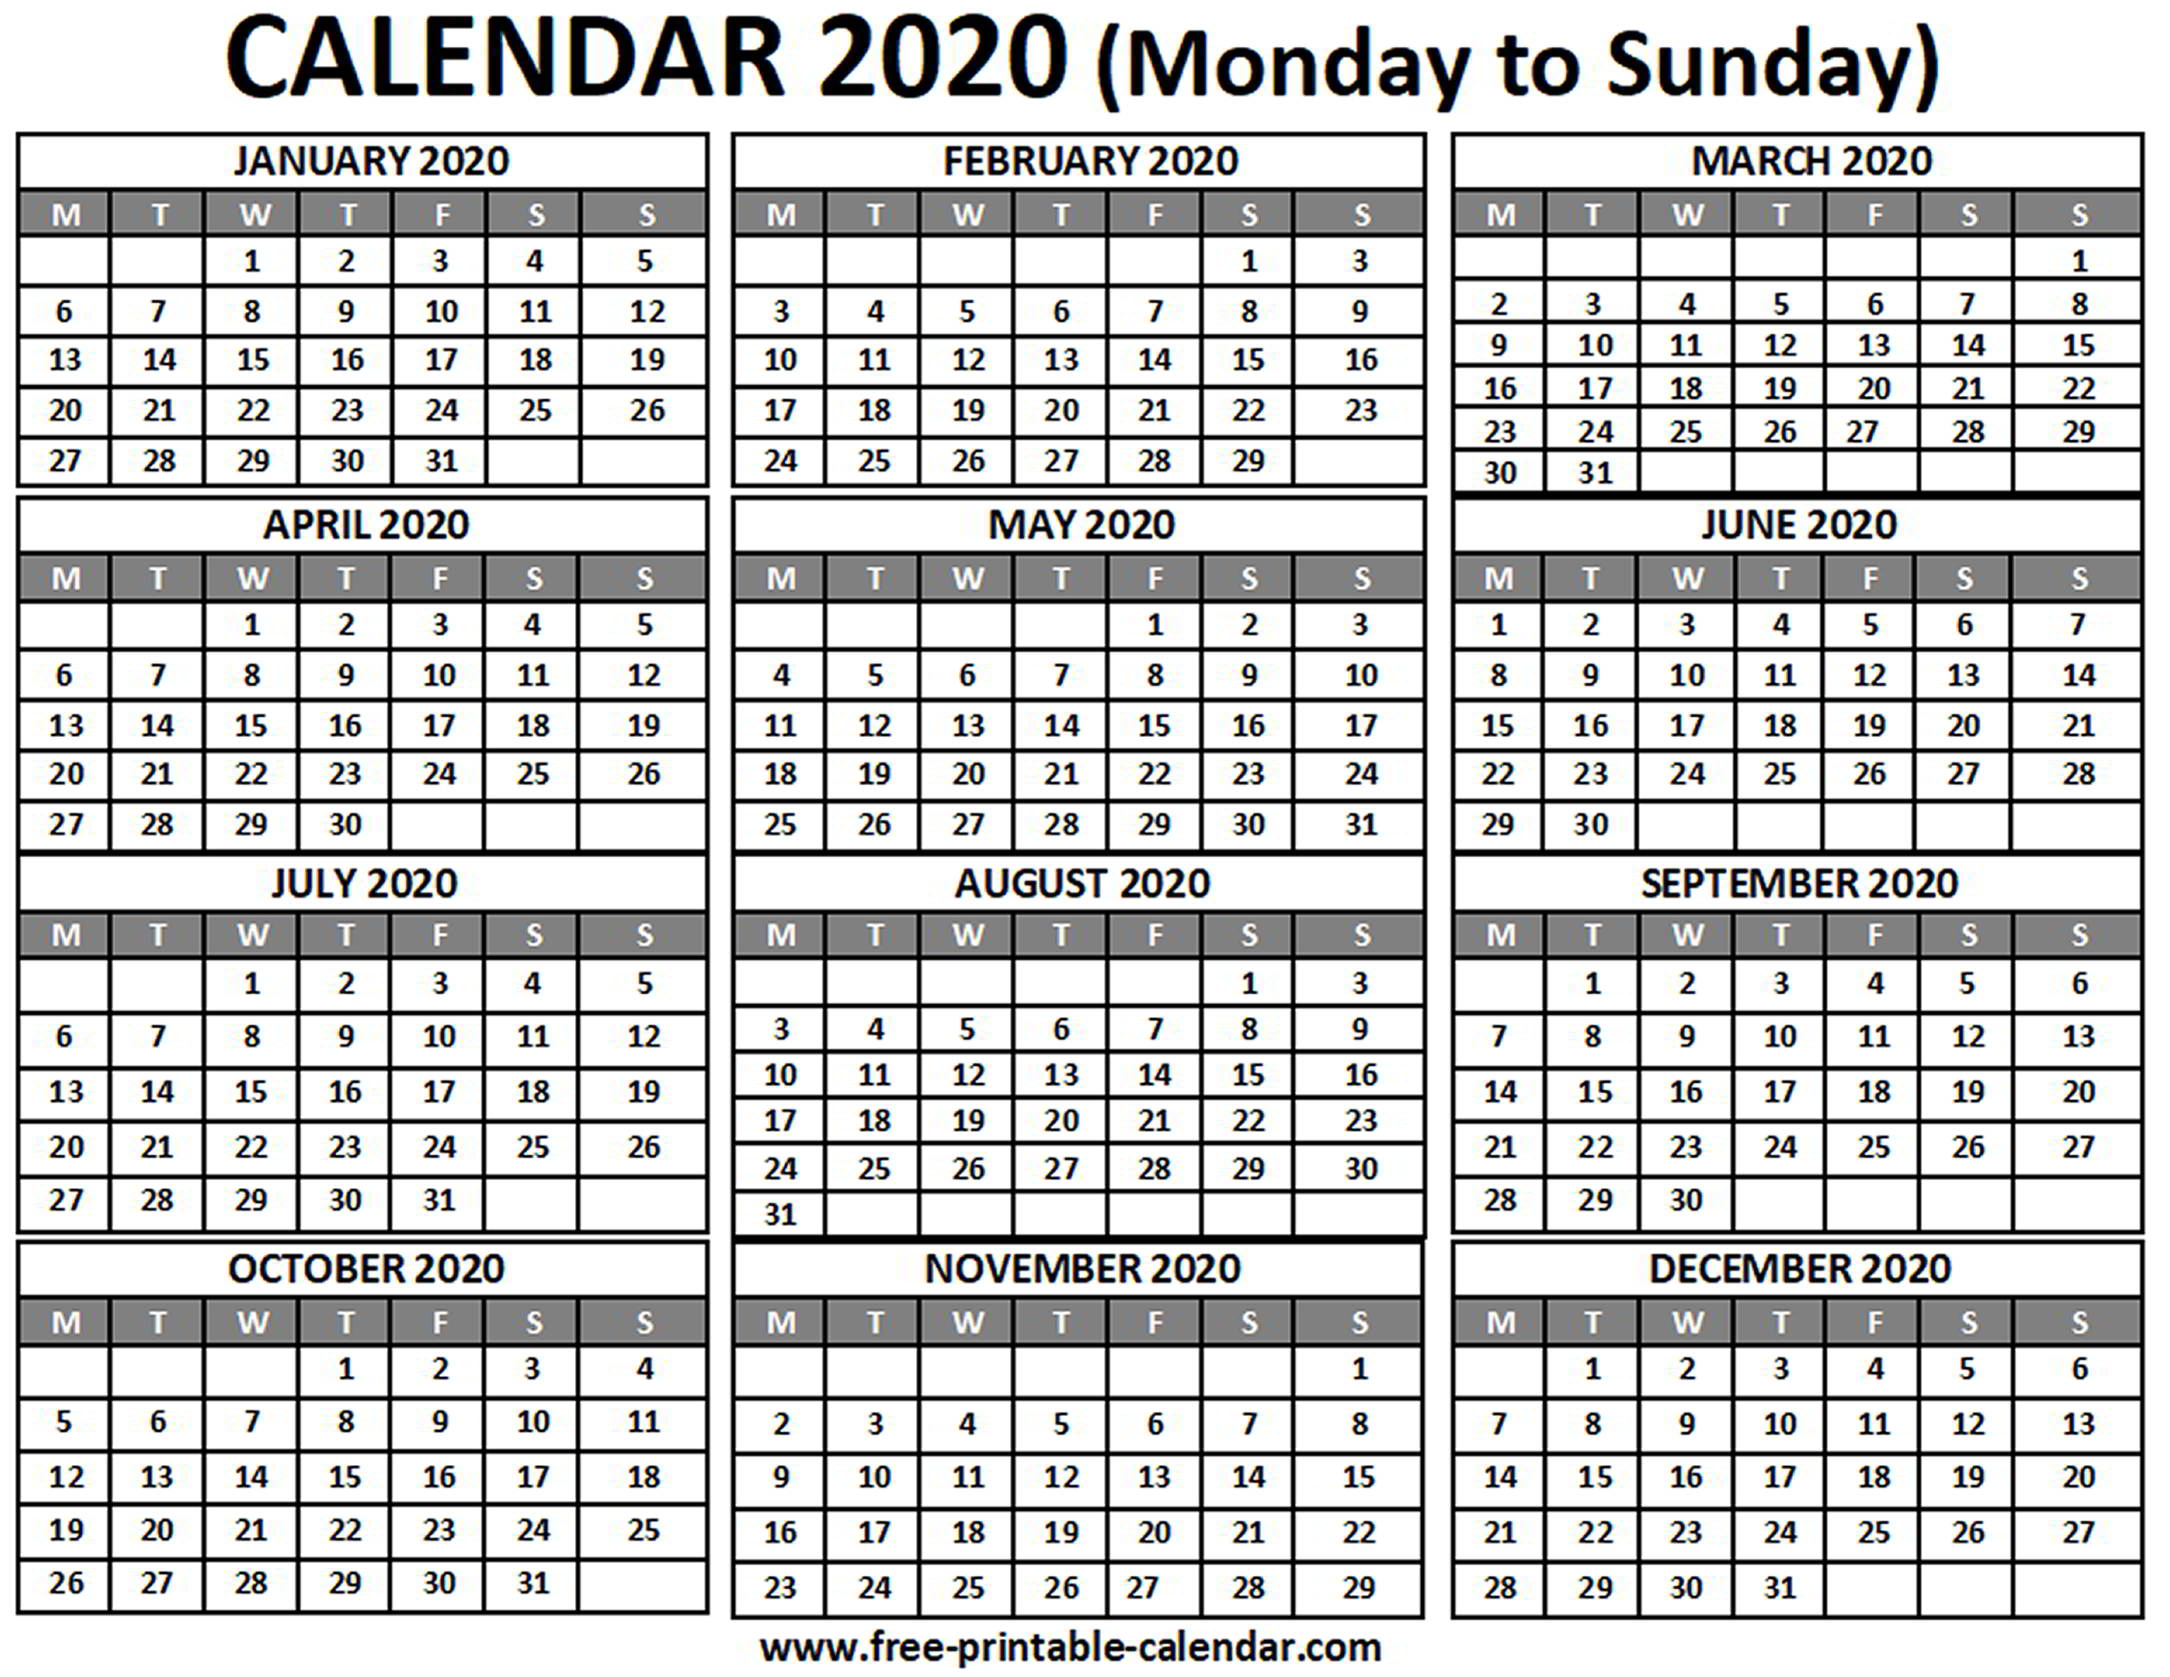 2020 Calendar - Free-Printable-Calendar intended for 2020 Calendar Monday To Sunday